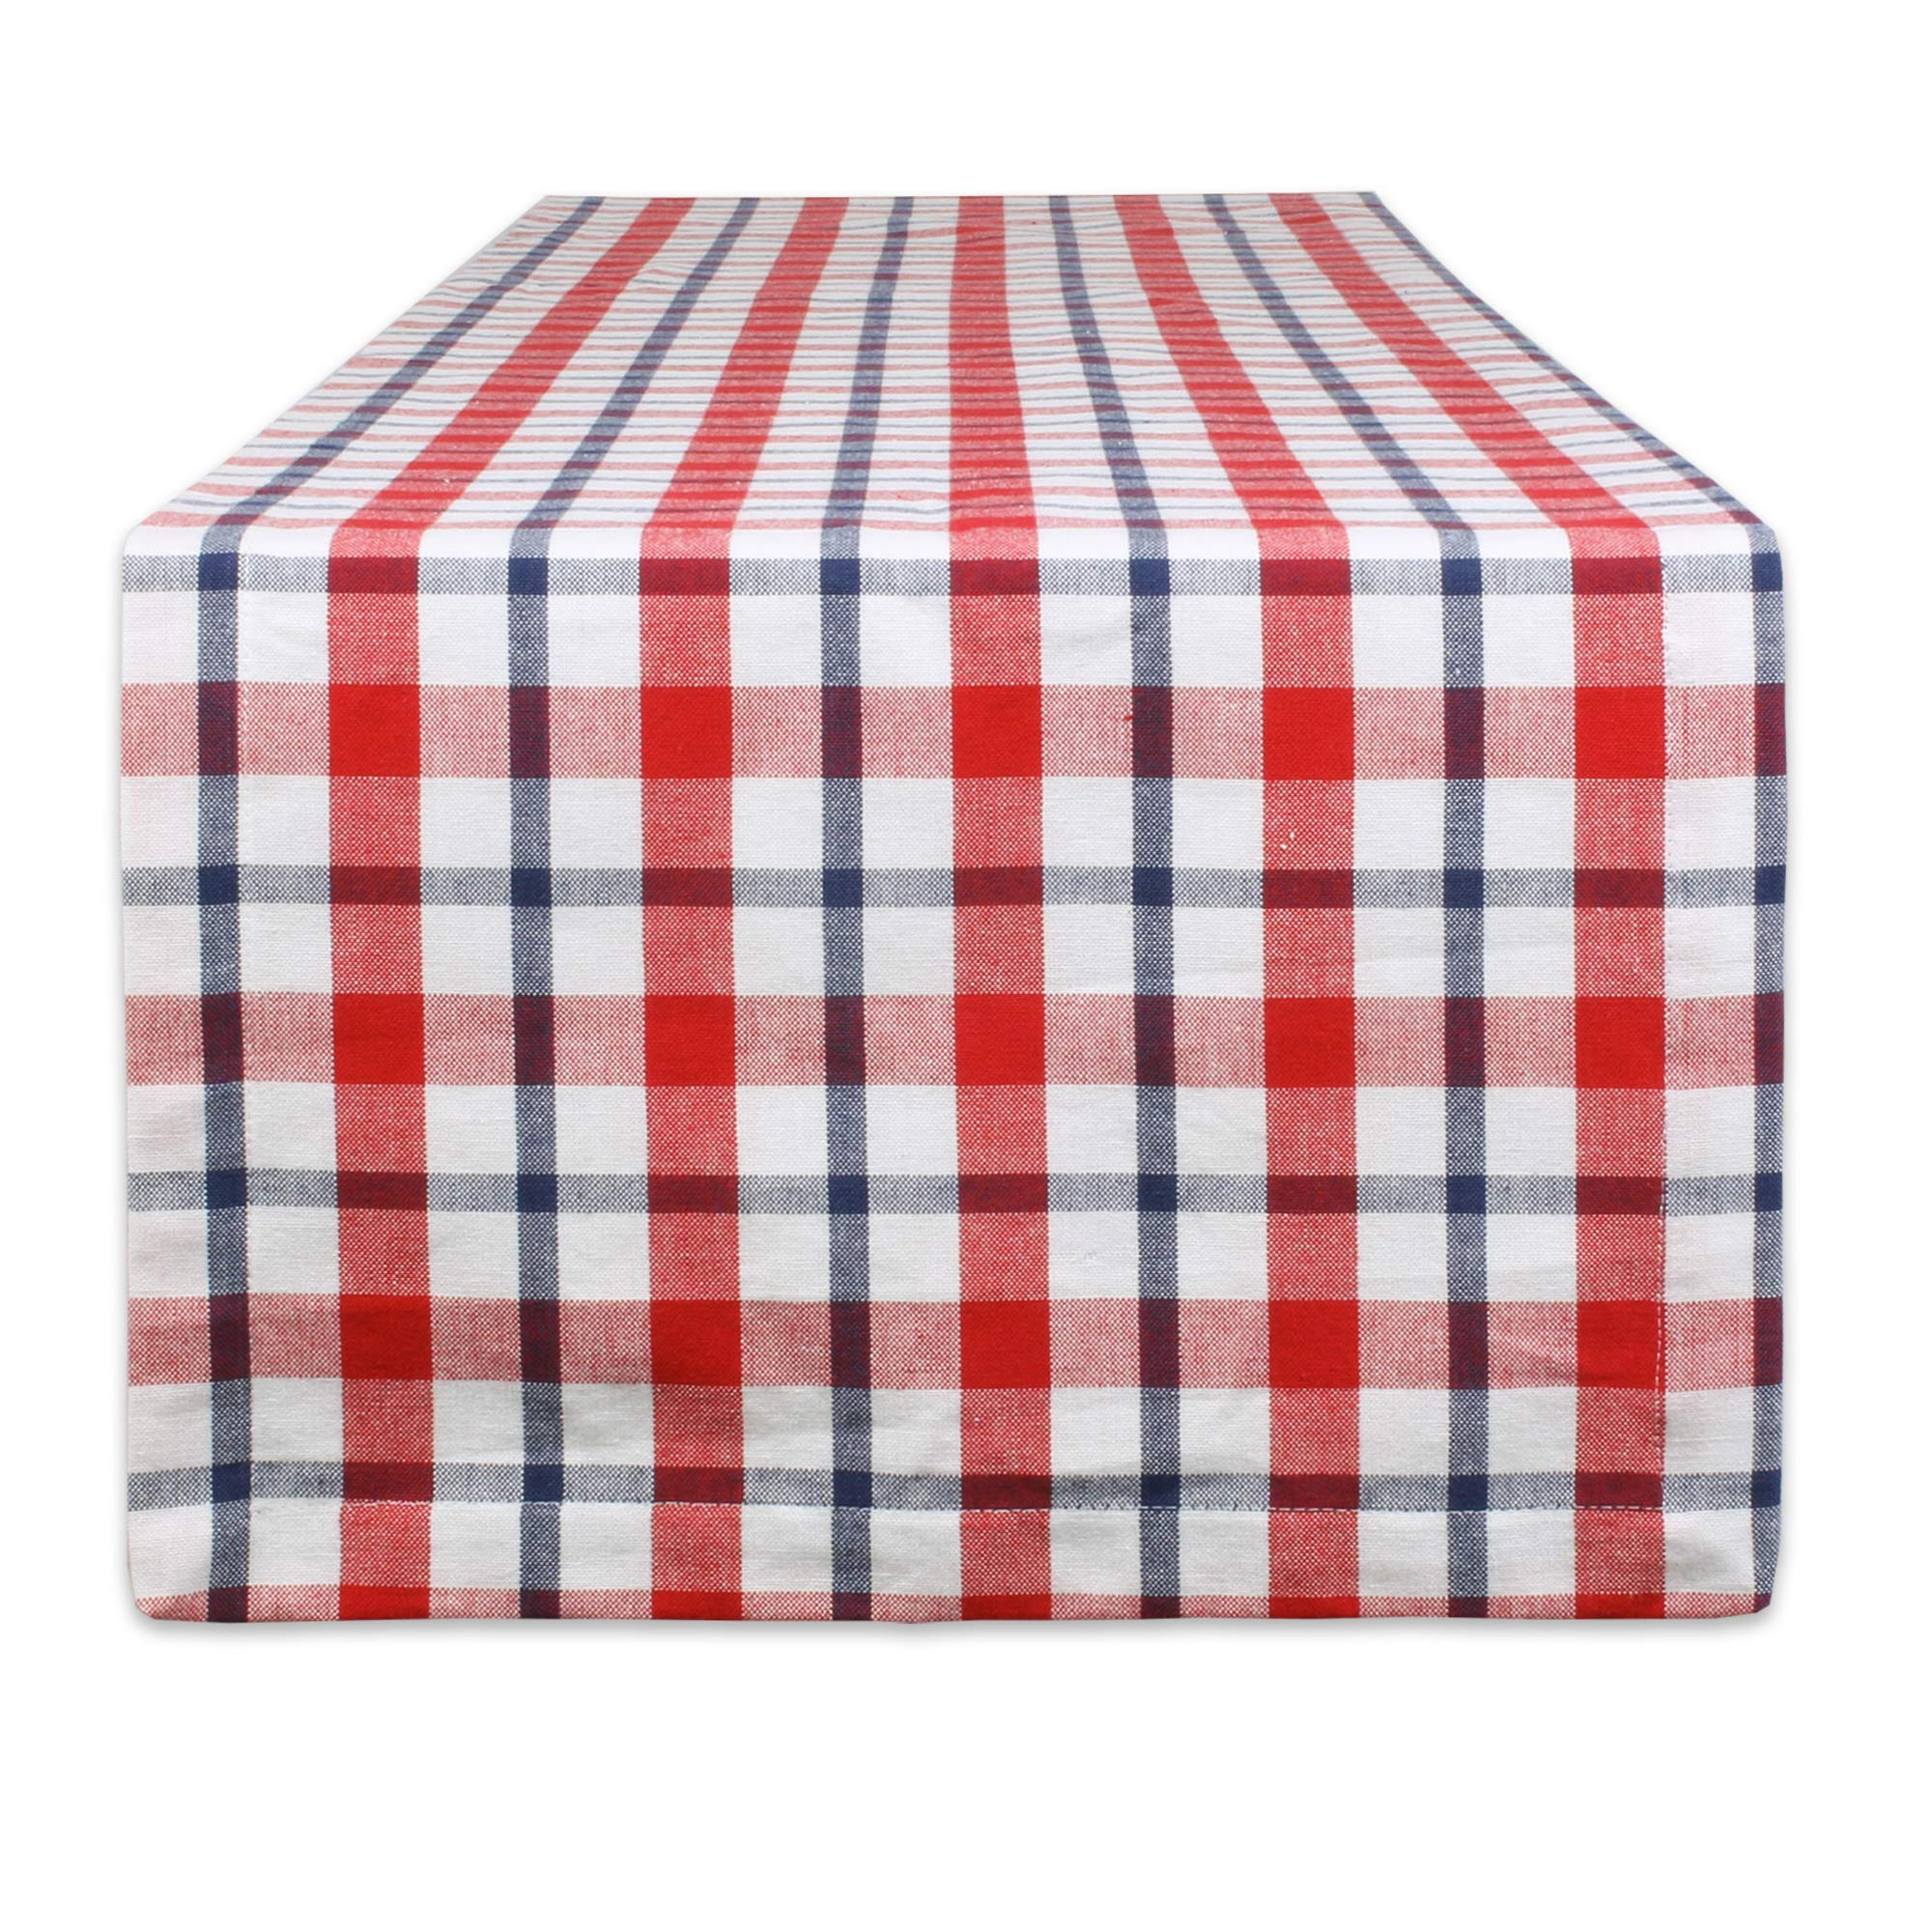 DII American Plaid Table Top Collection for Everyday Use, Summer Cook-Outs, Barbeques, Picnics, Indoor/Outdoor Entertaining, 100% Cotton Machine Washable, Runner, 14x72